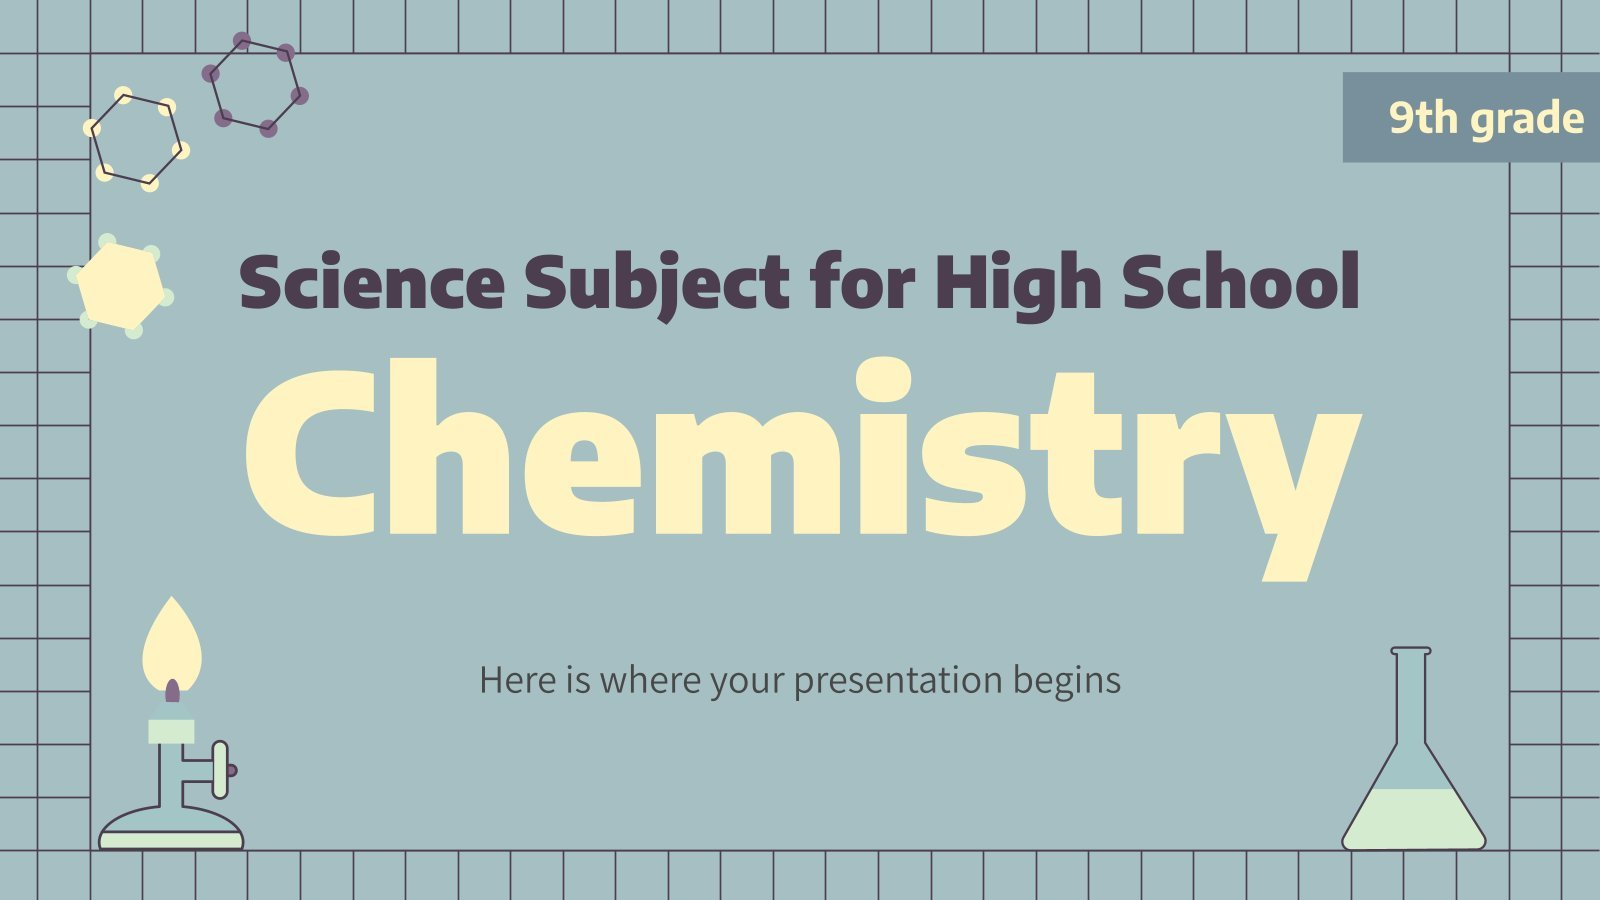 Science Subject for High School - 9th Grade: Chemistry presentation template